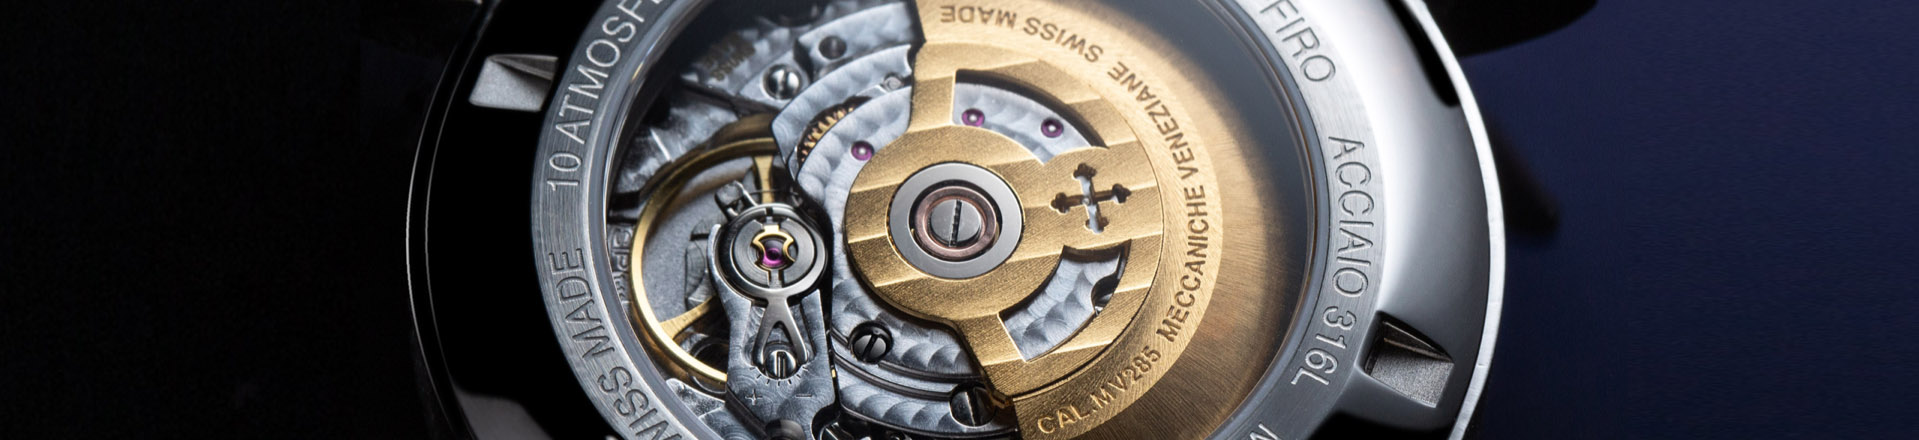 Watch movement Swiss Made Meccaniche Veneziane close up